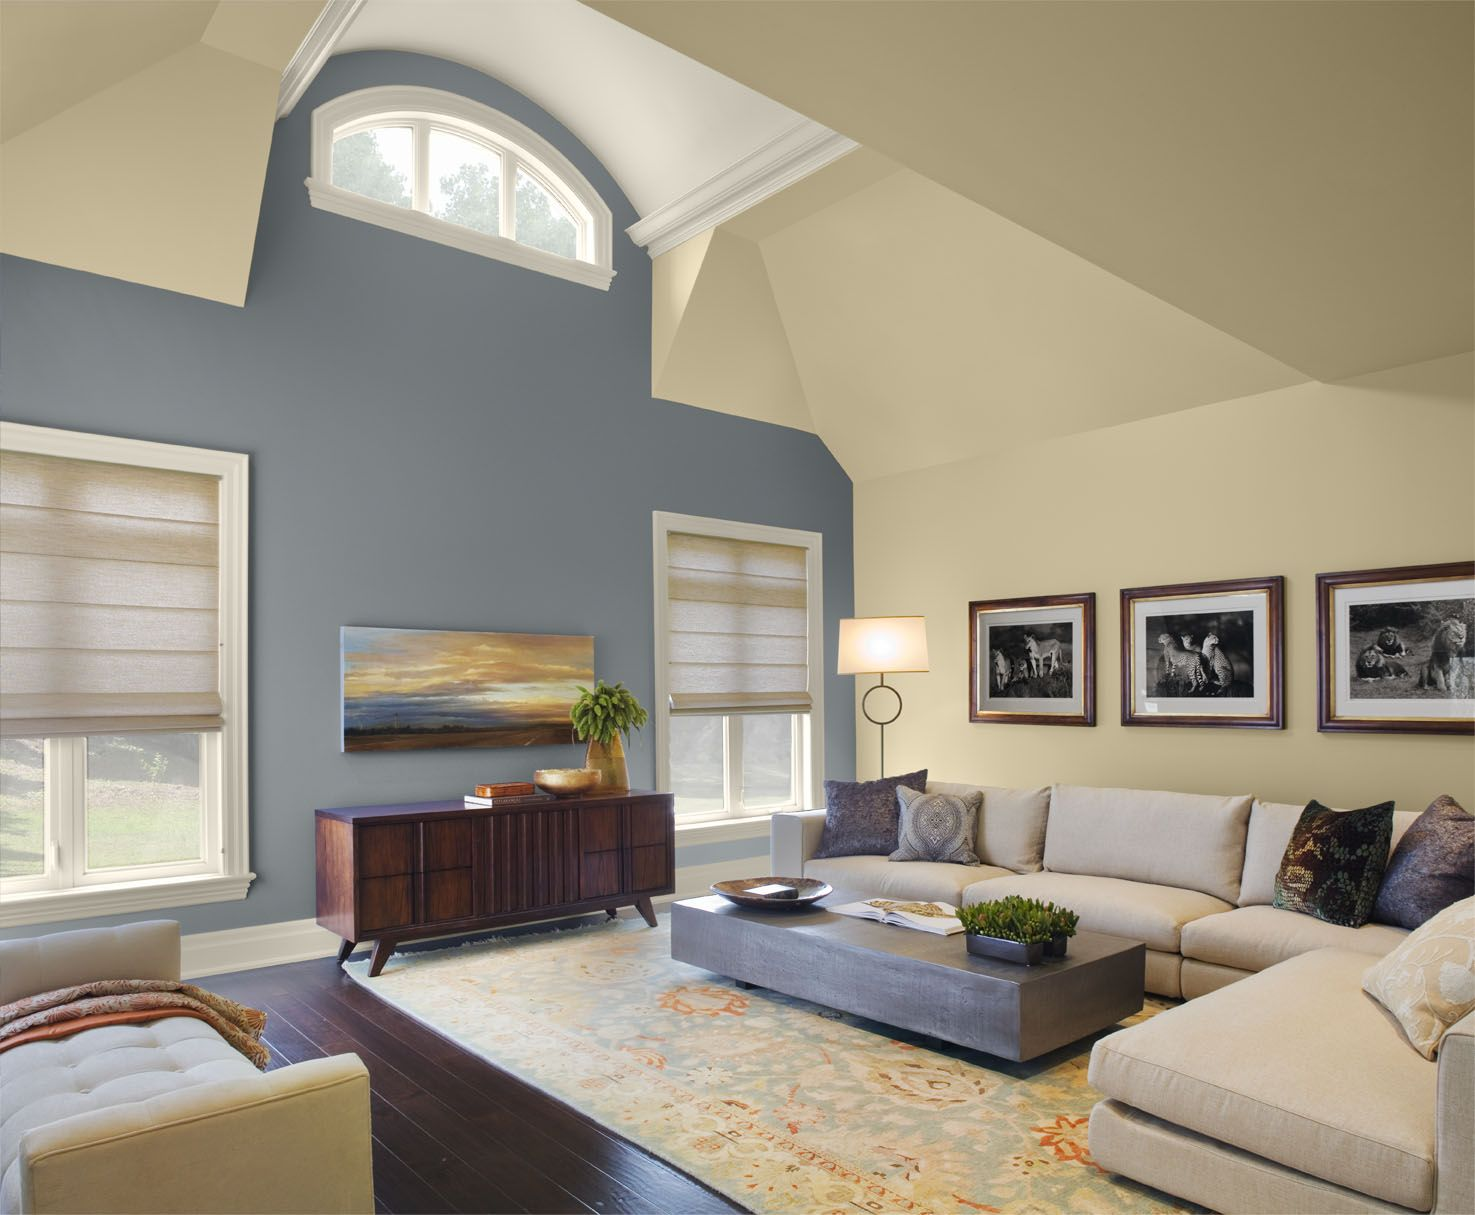 Living room paint ideas accent wall - A_ Living Room 1_nopillow_v6_arch Ceiling Detail Navy Walls And Ceilings